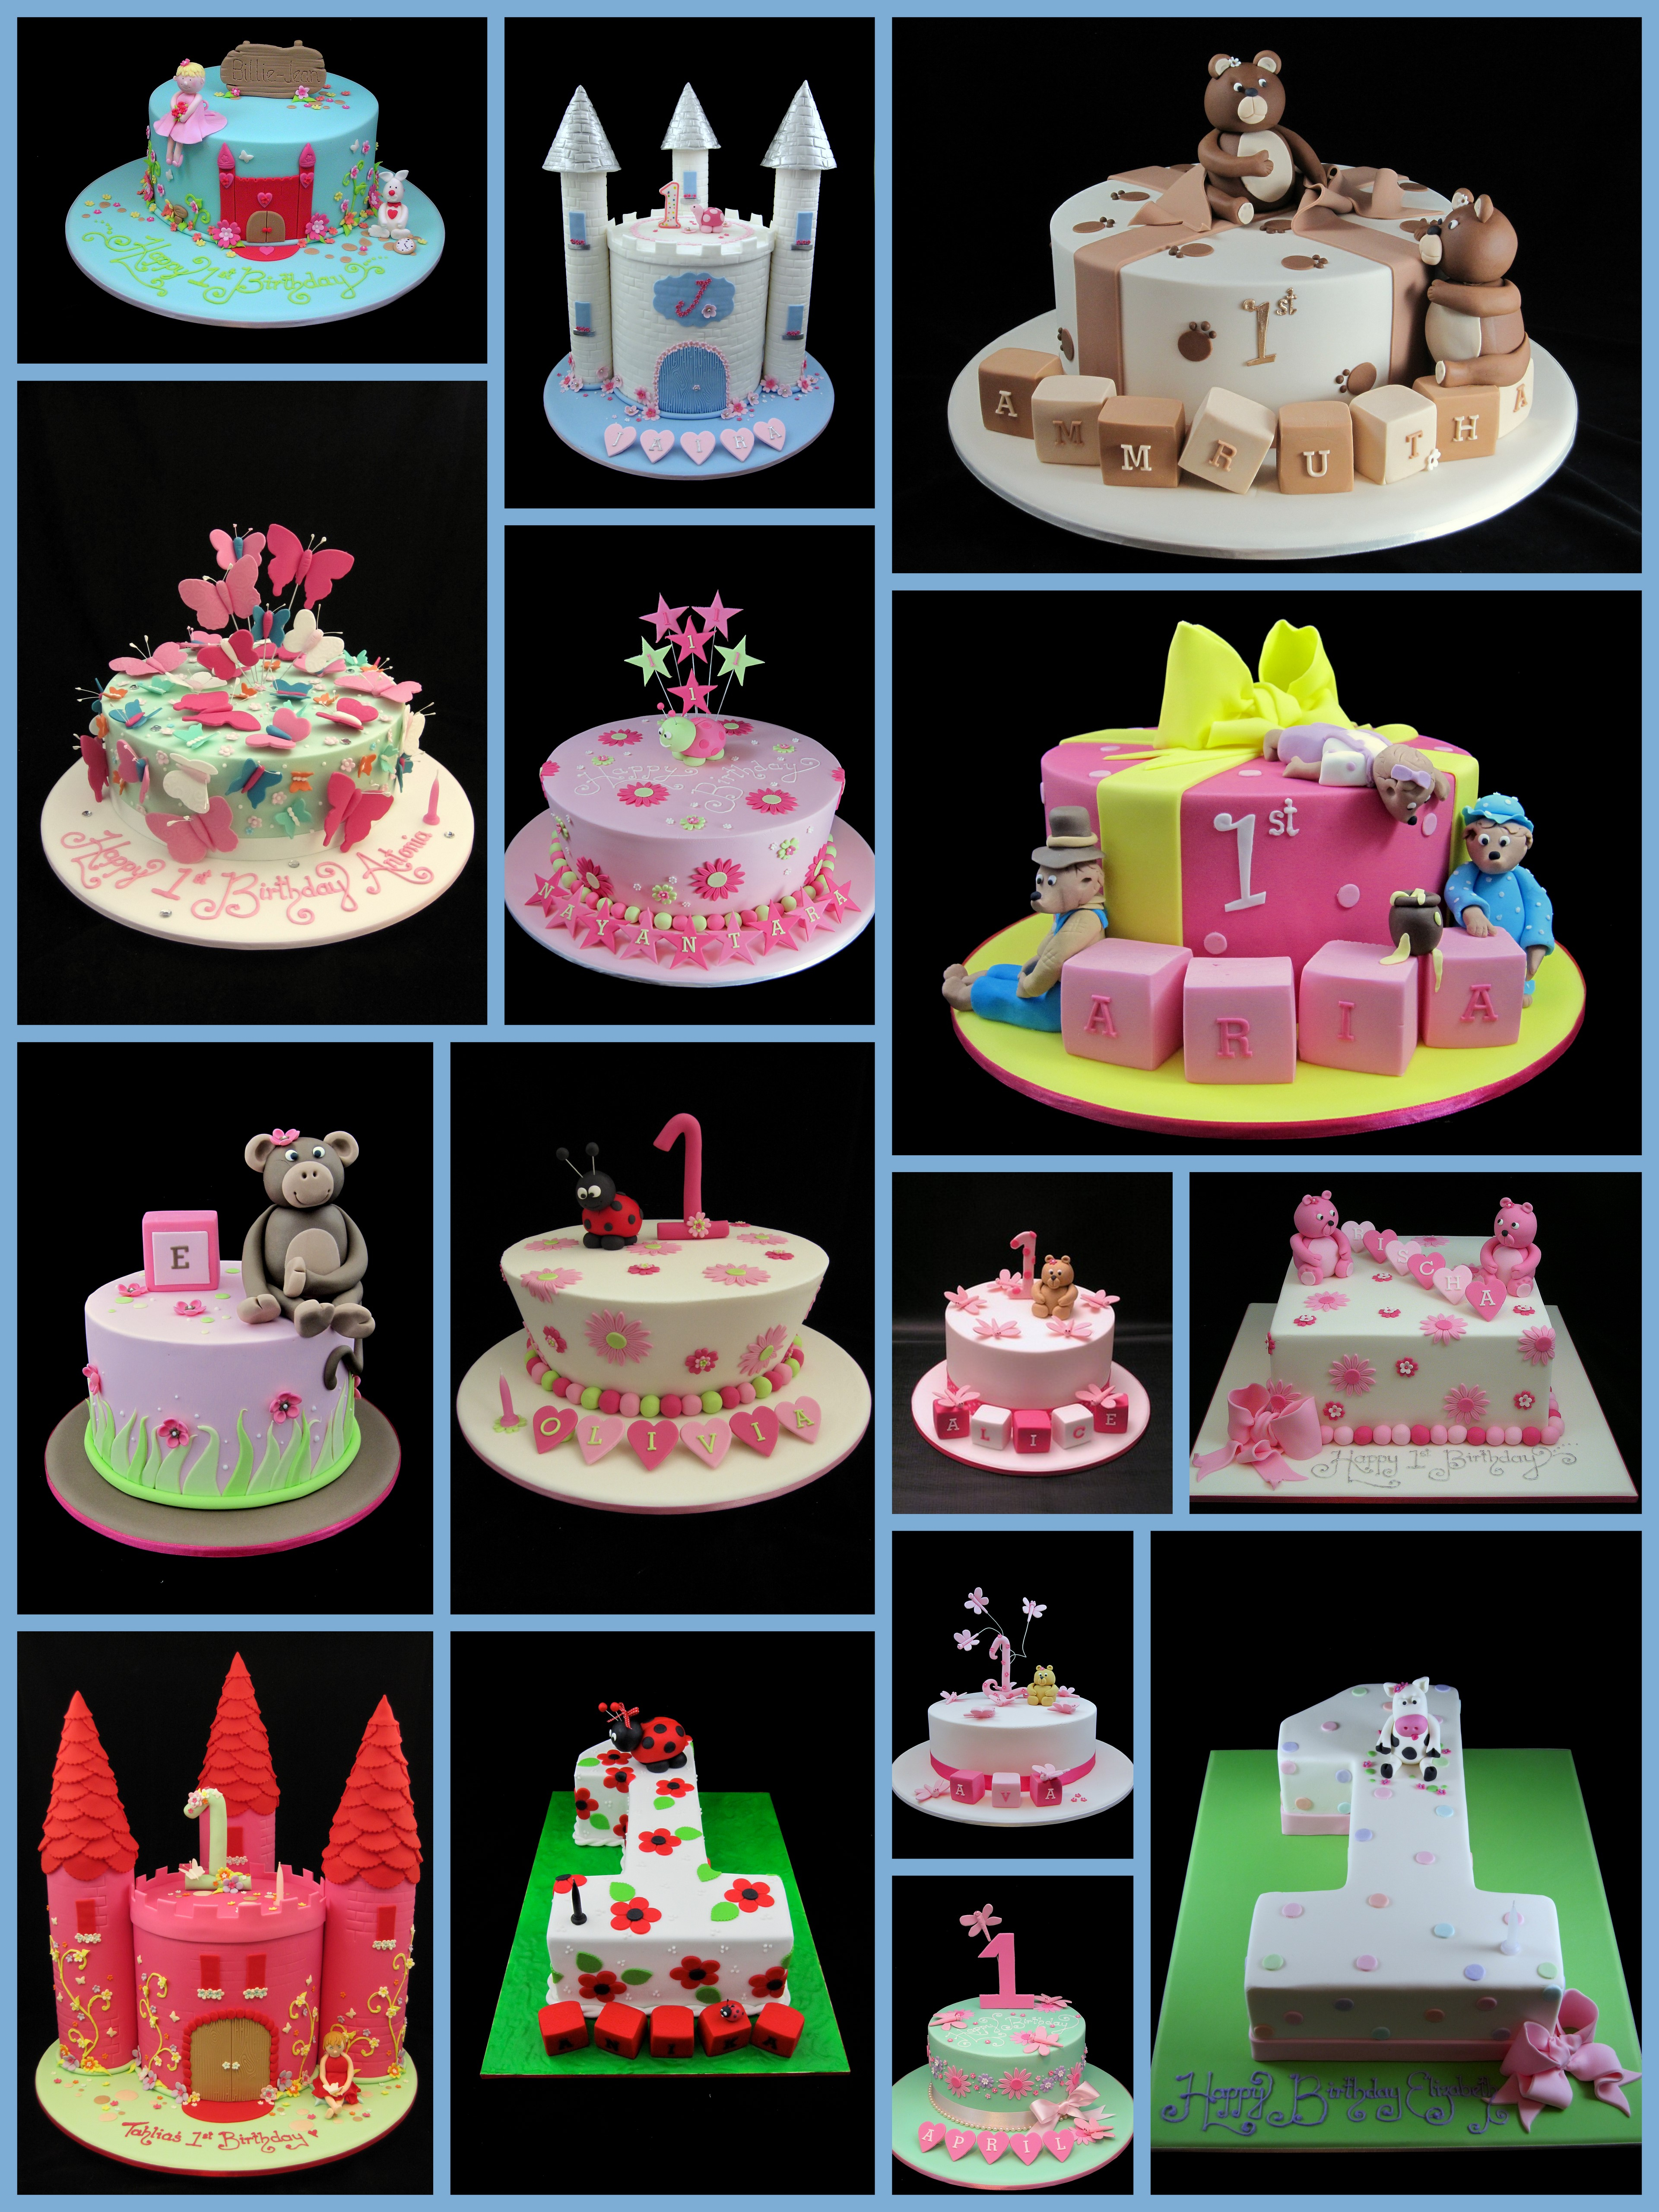 Women's Birthday Cake Ideas Pictures Of Birthday Cakes For Women 658 Classic Style Pictures